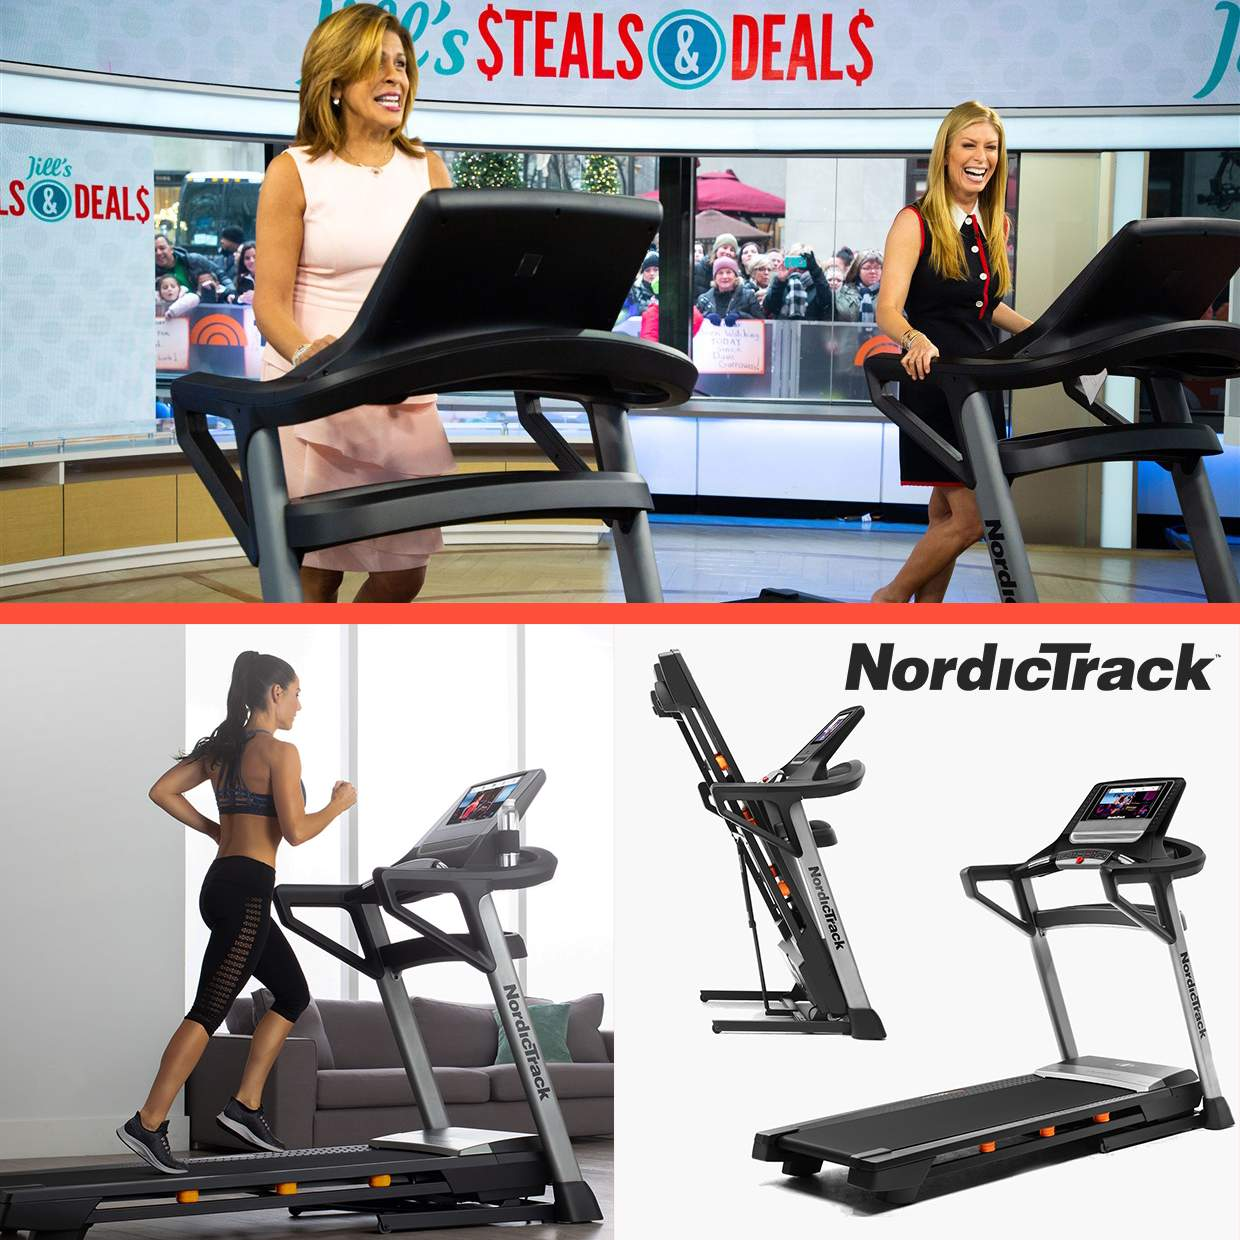 - The NordicTrack T Series Treadmills is our best pickunder $1,000 and up for power walking and light running